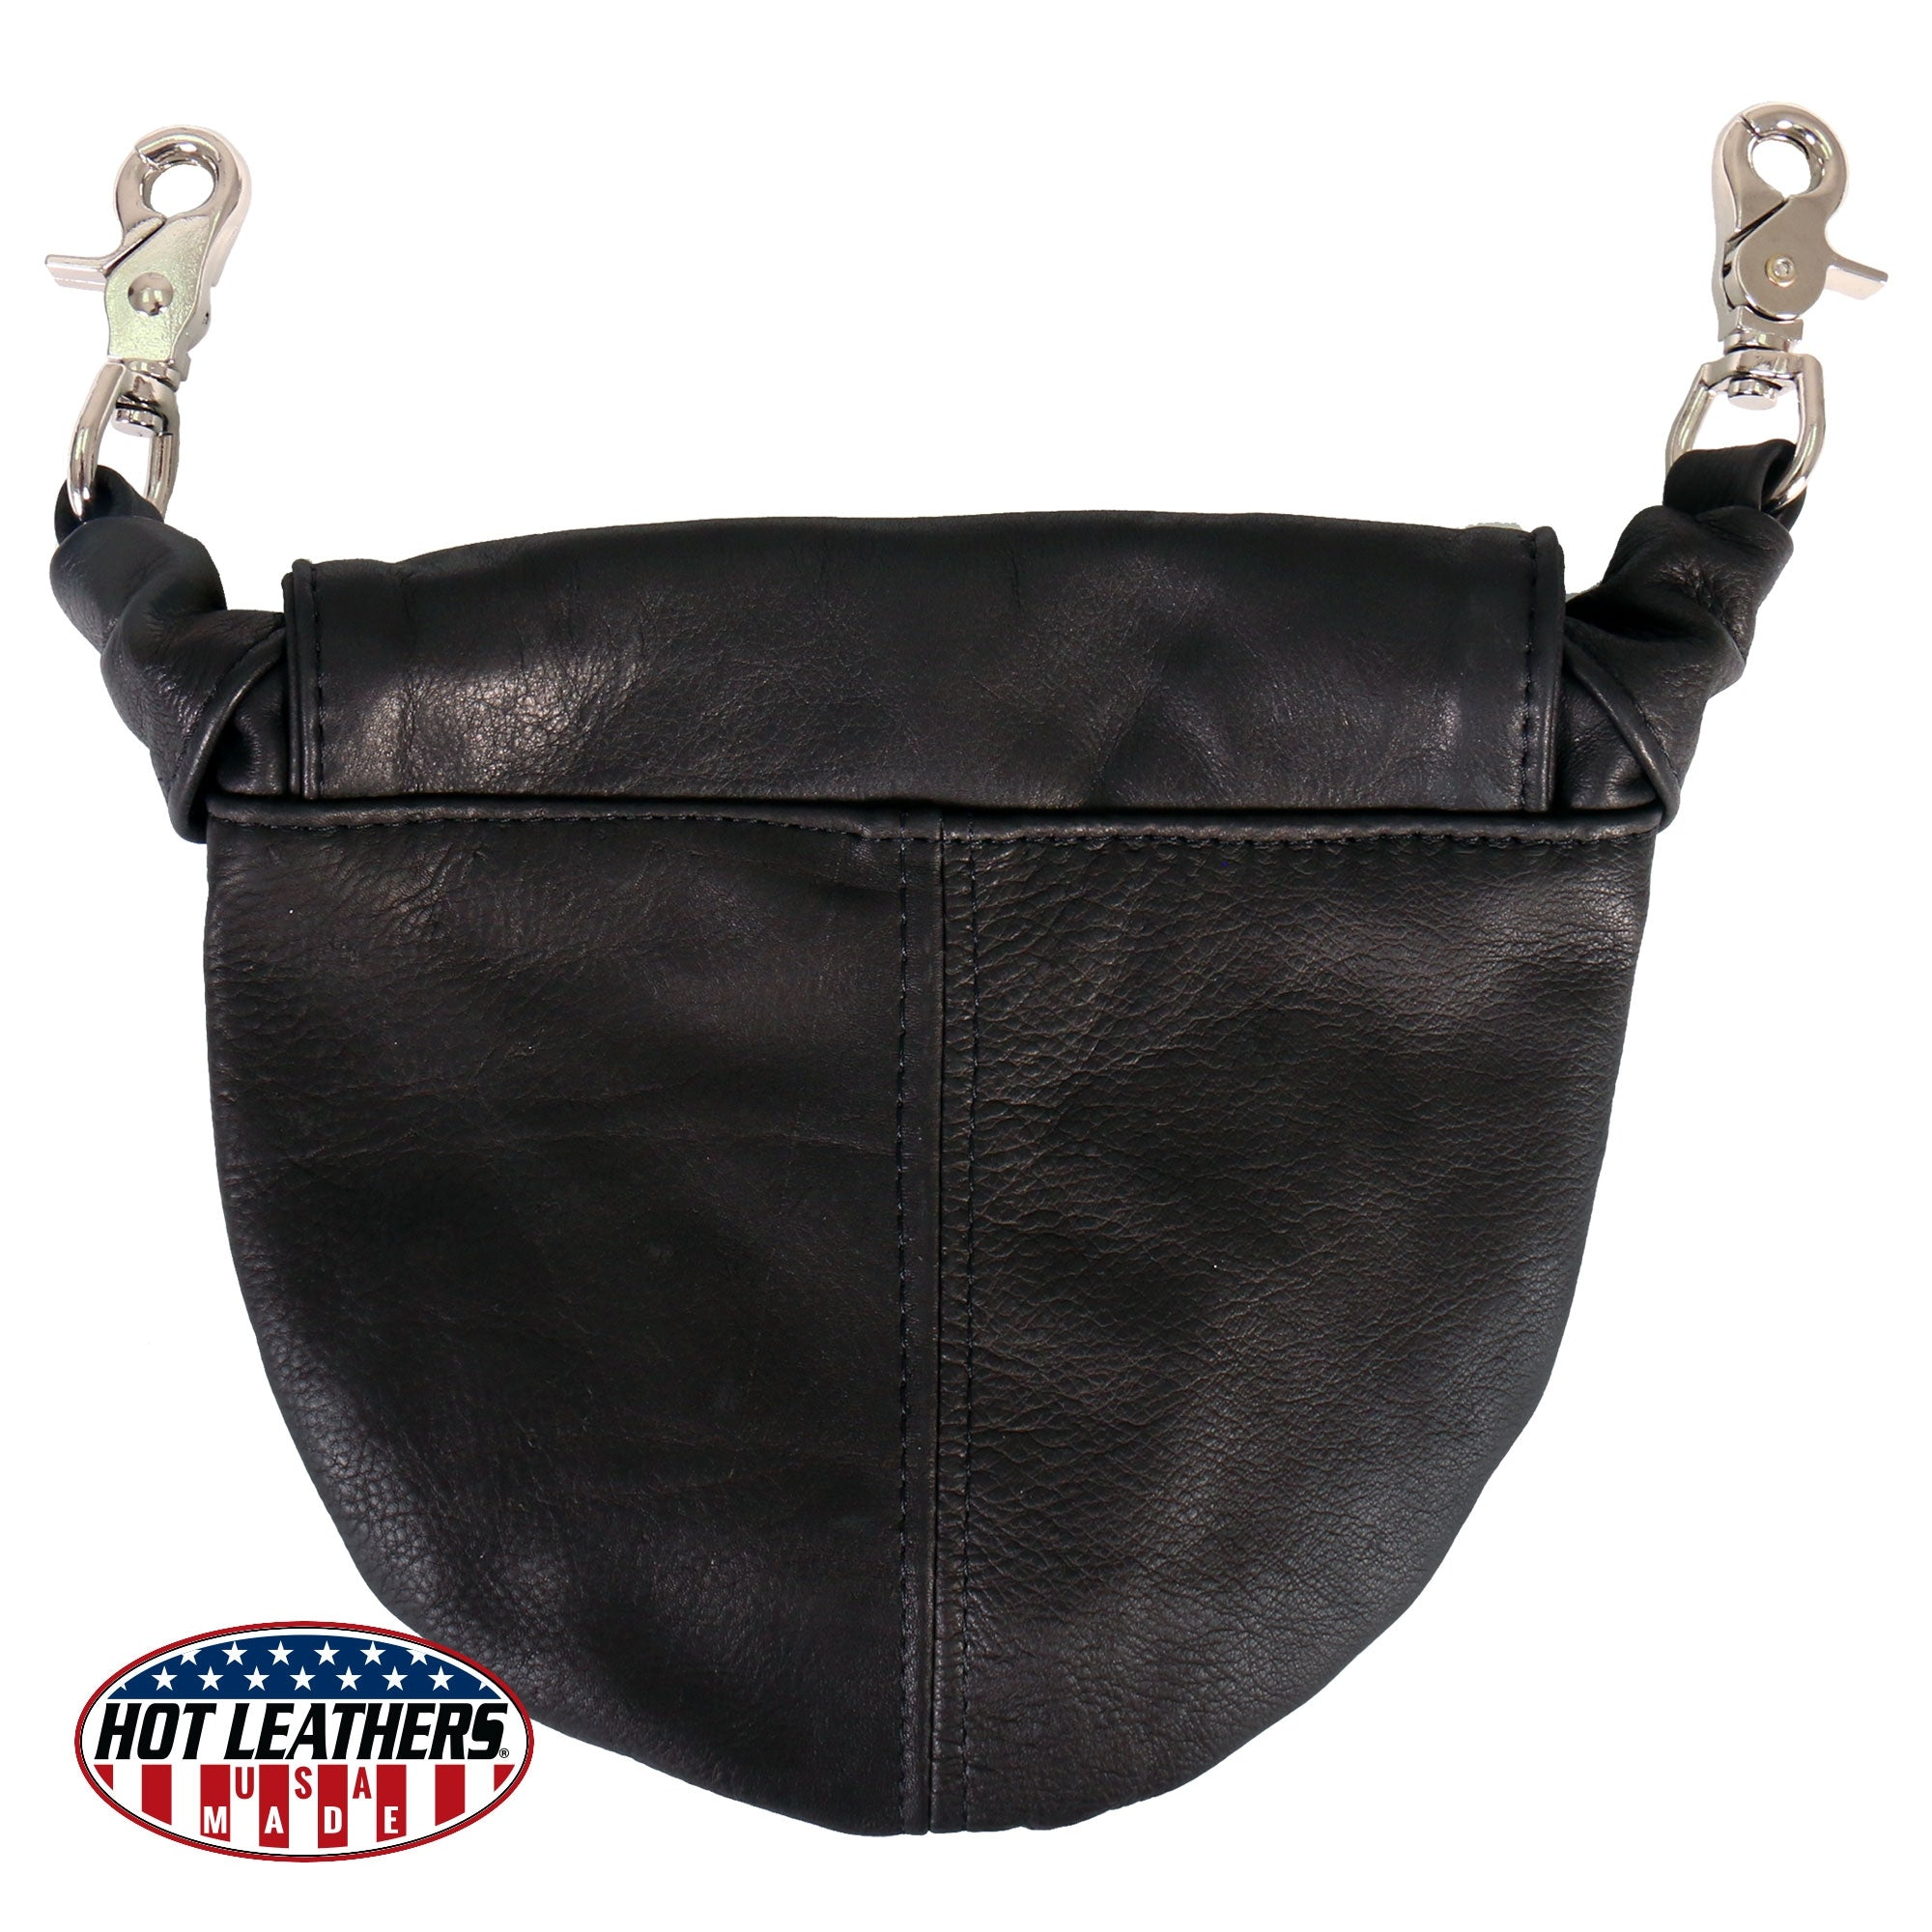 Hot Leathers USA Made Premium Leather Fold Over Clip Pouch